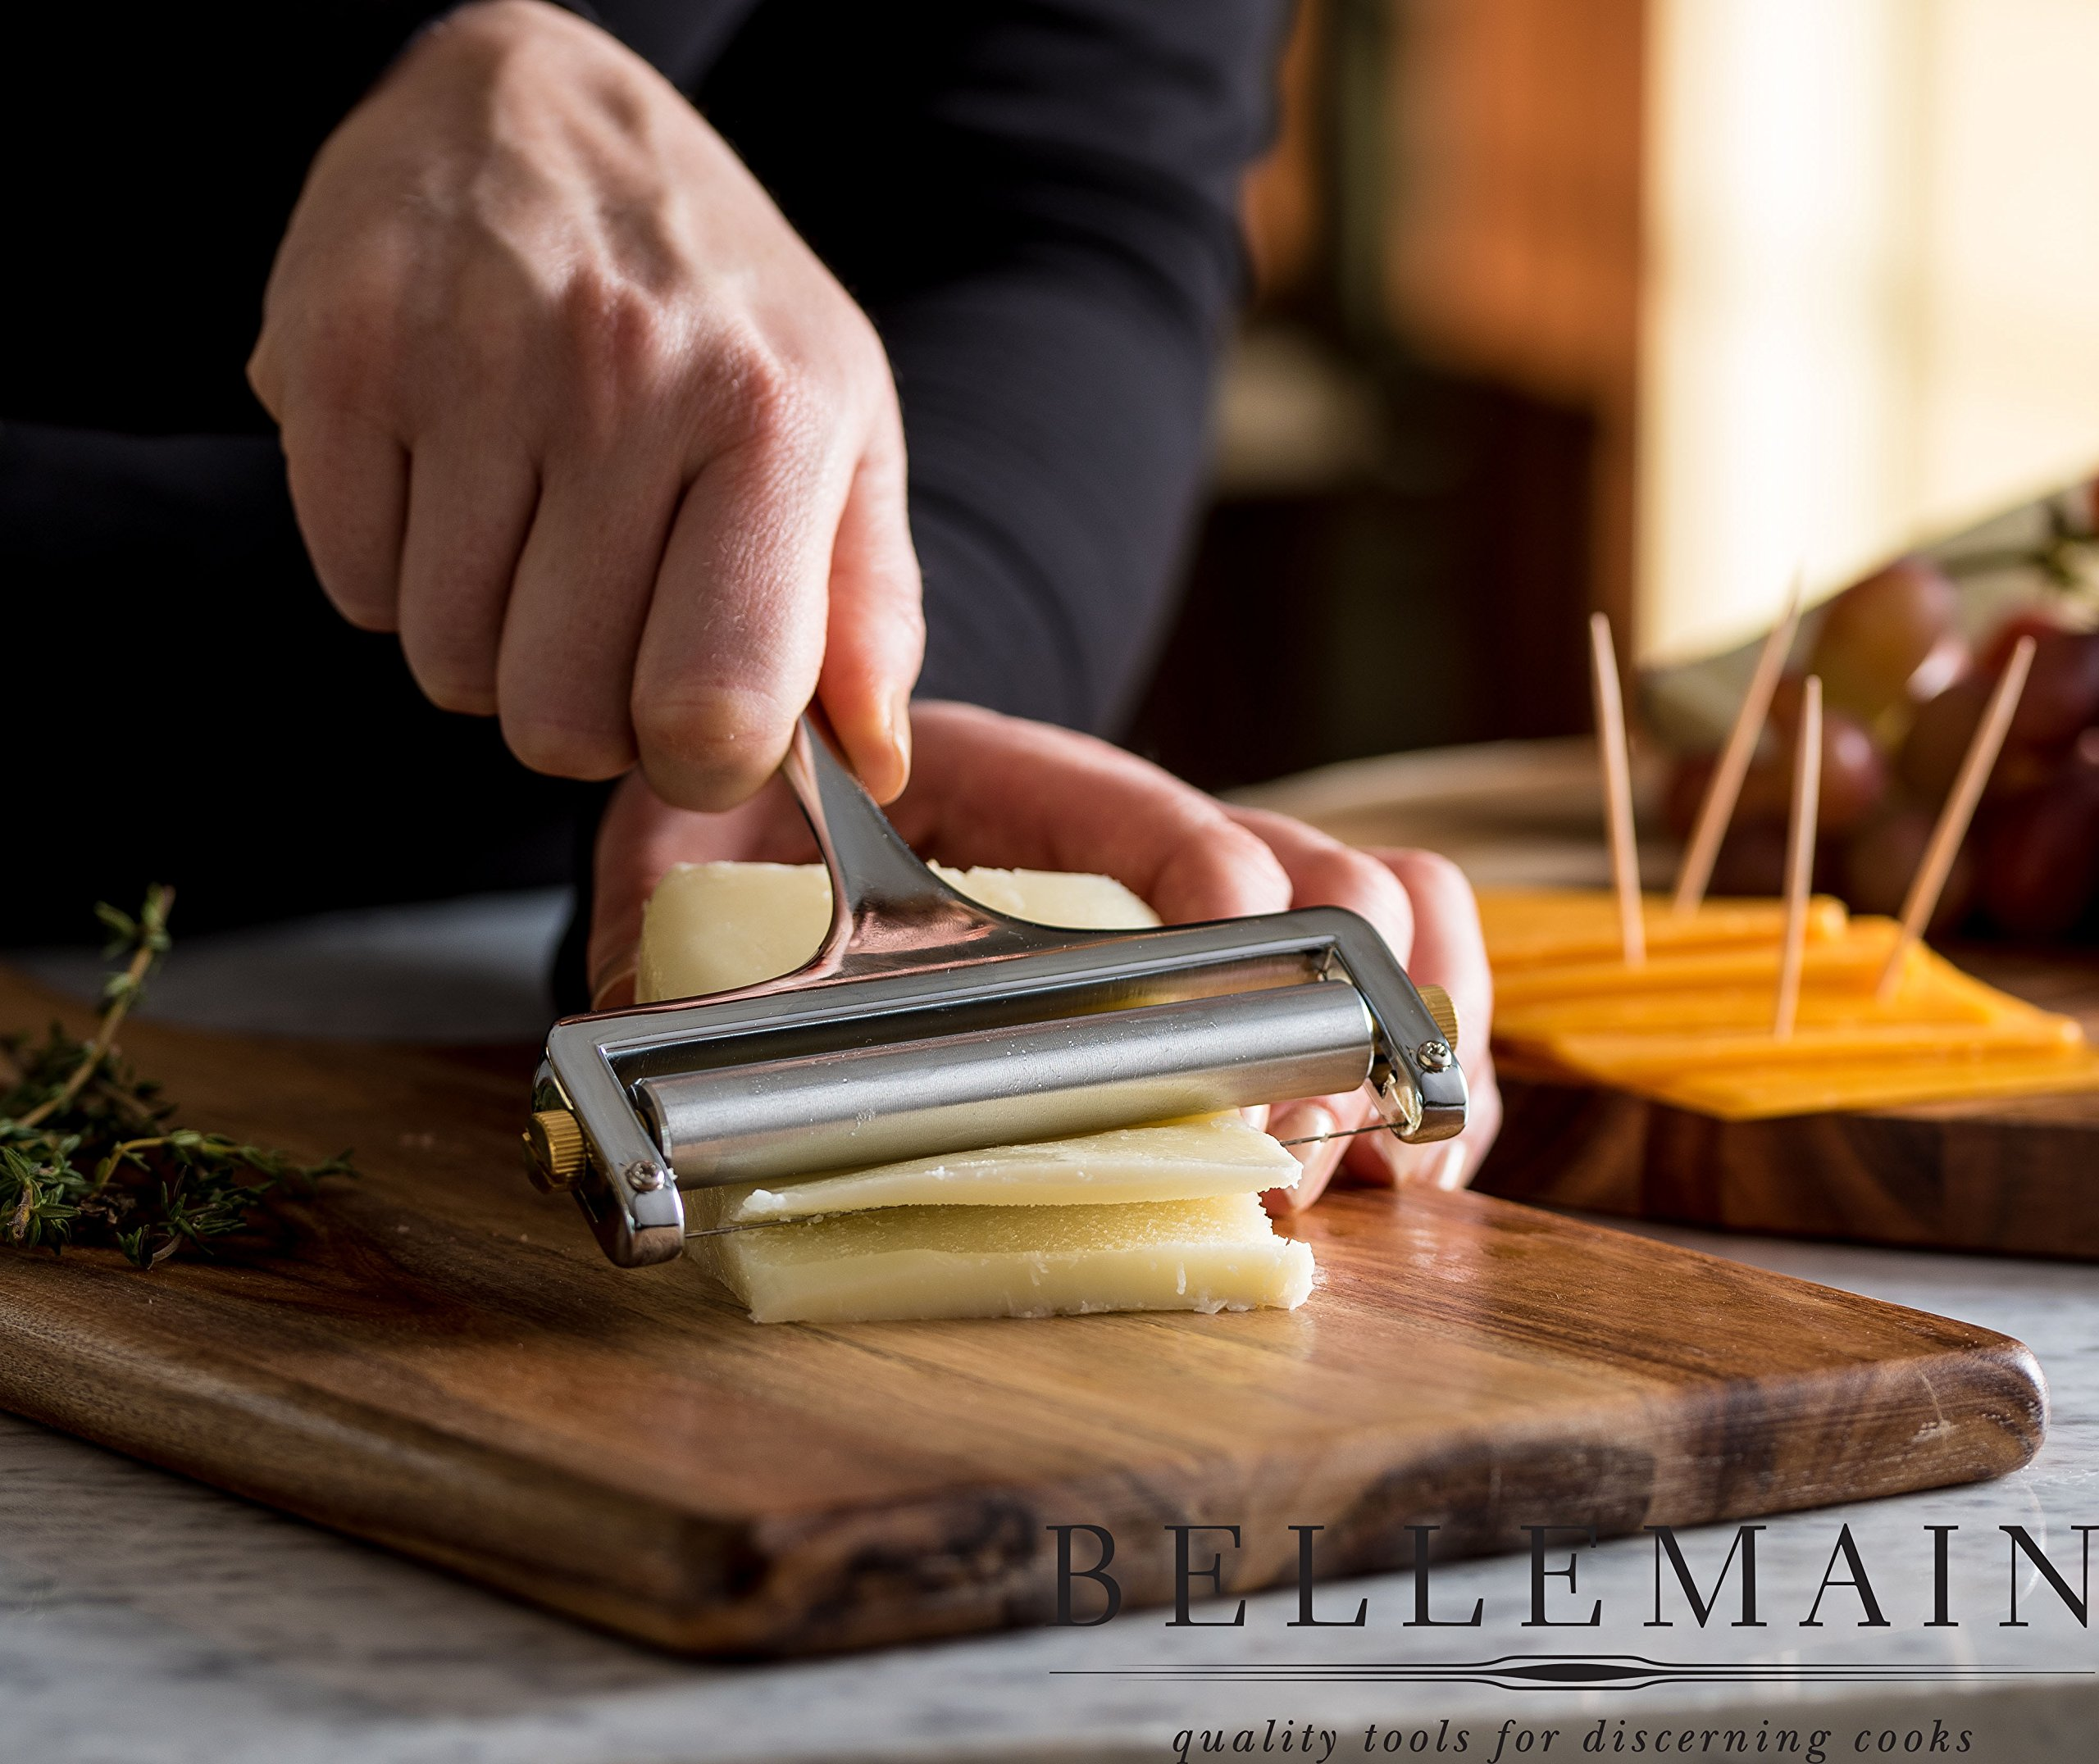 Bellemain Adjustable Thickness Cheese Slicer Replacement